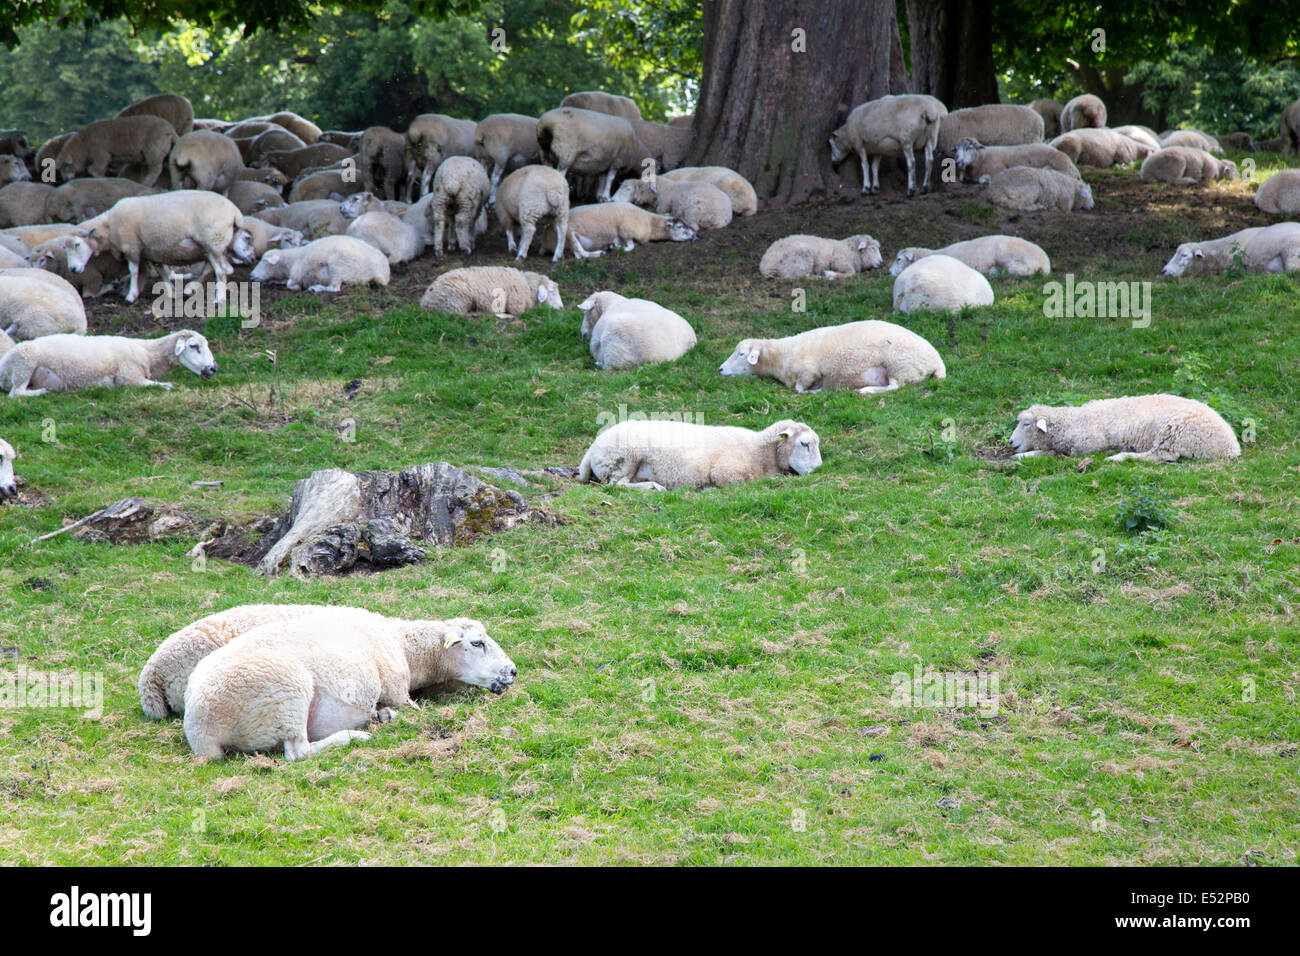 White faced sheep enjoying a siesta in the shade of trees in the Hampshire countryside UK - Stock Image